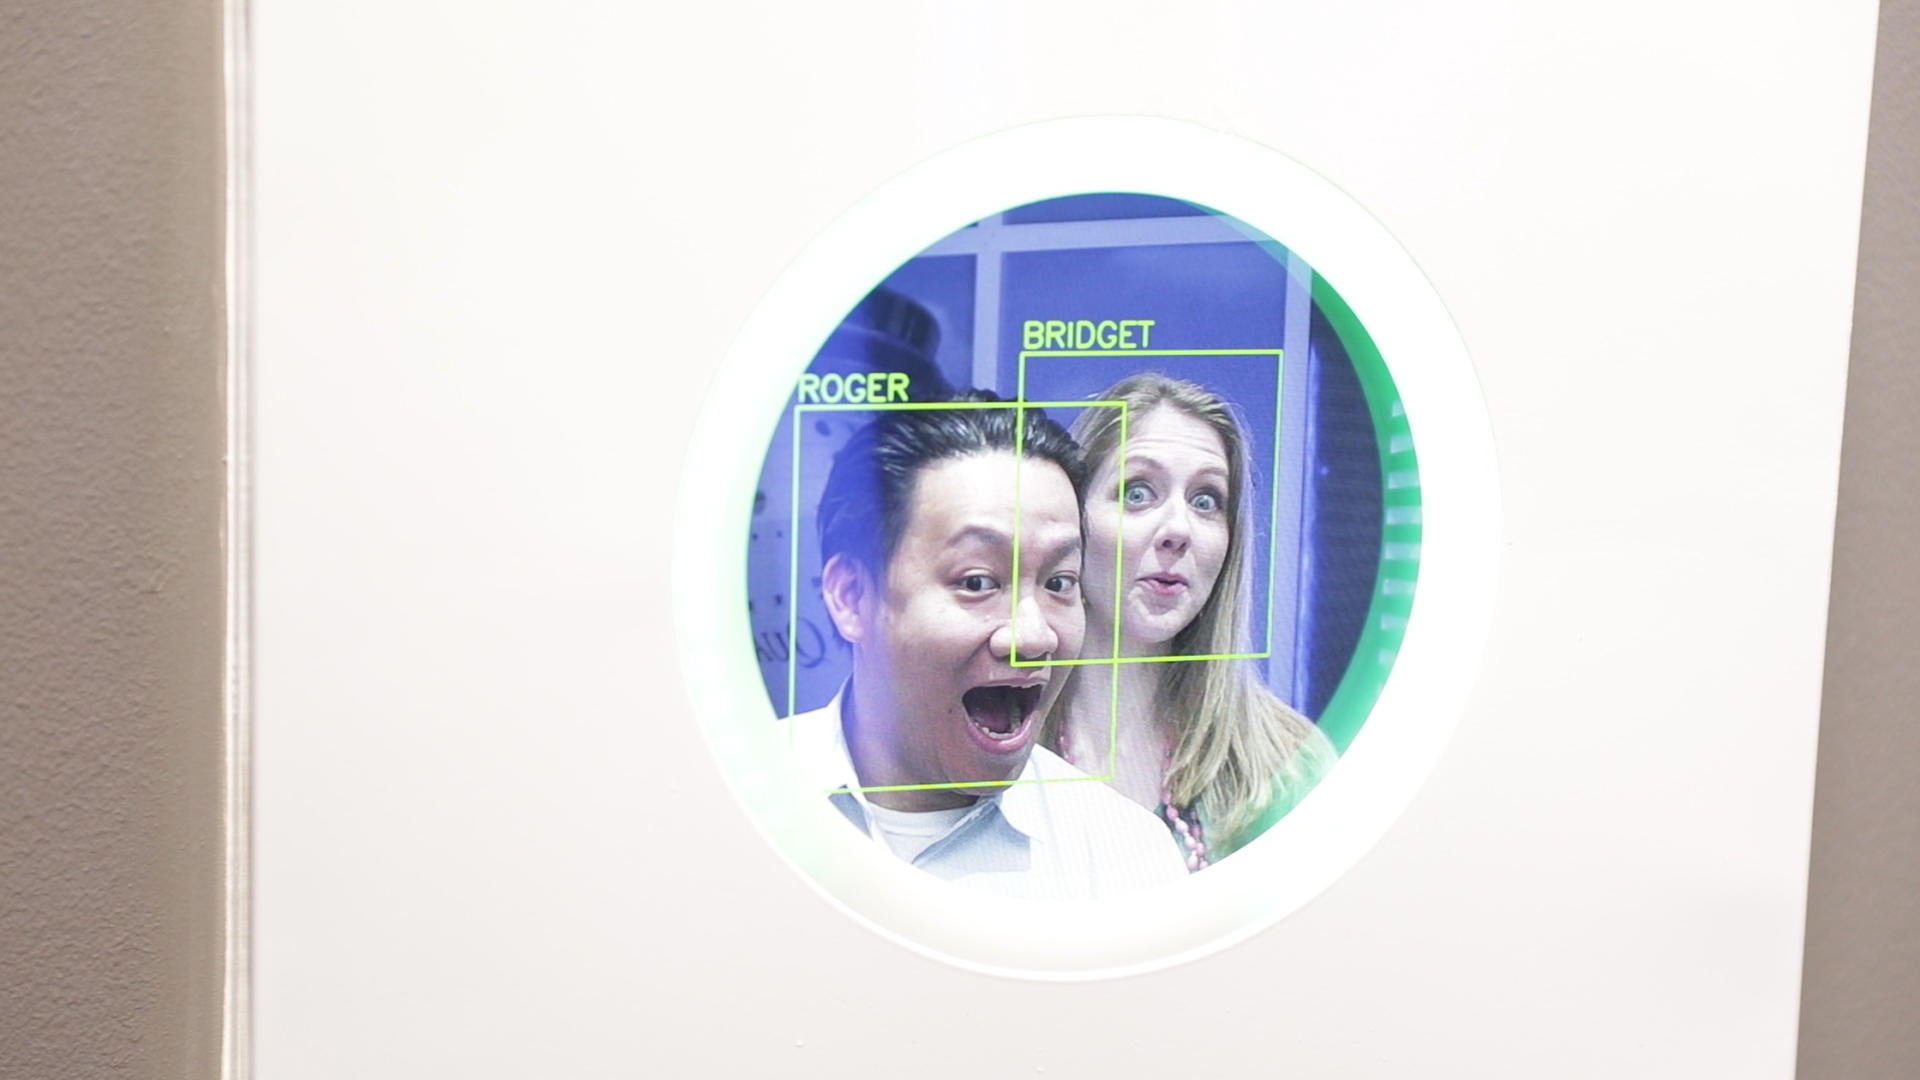 Roger Cheng and Bridget Carey test a facial recognition system.